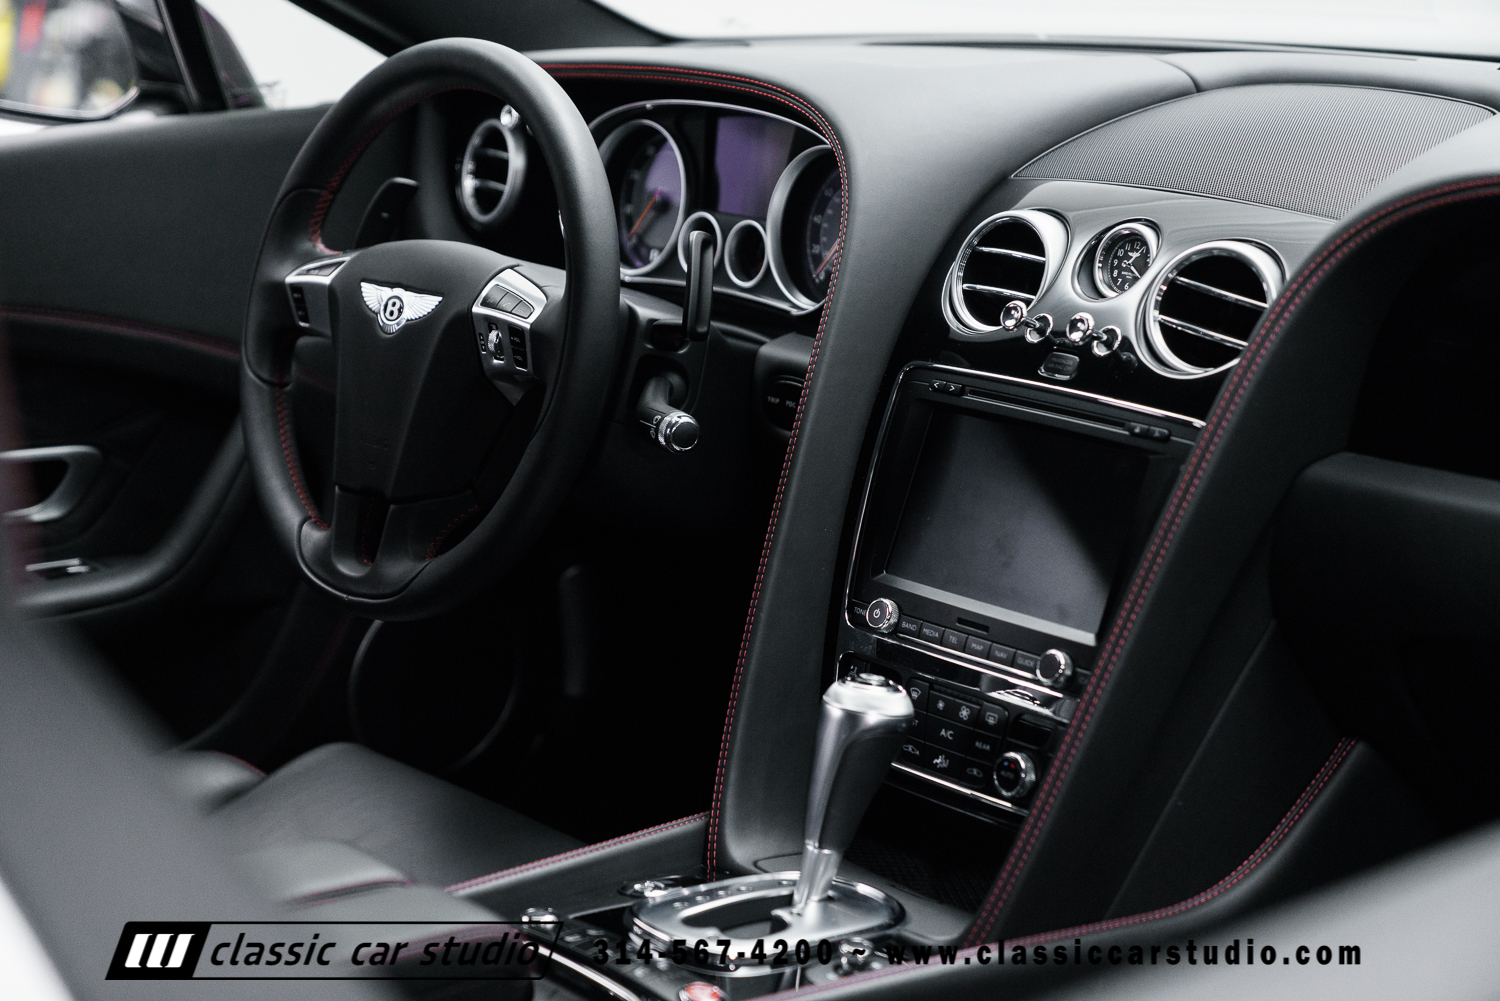 2015 Bentley Continental Gt V8 S Classic Car Studio